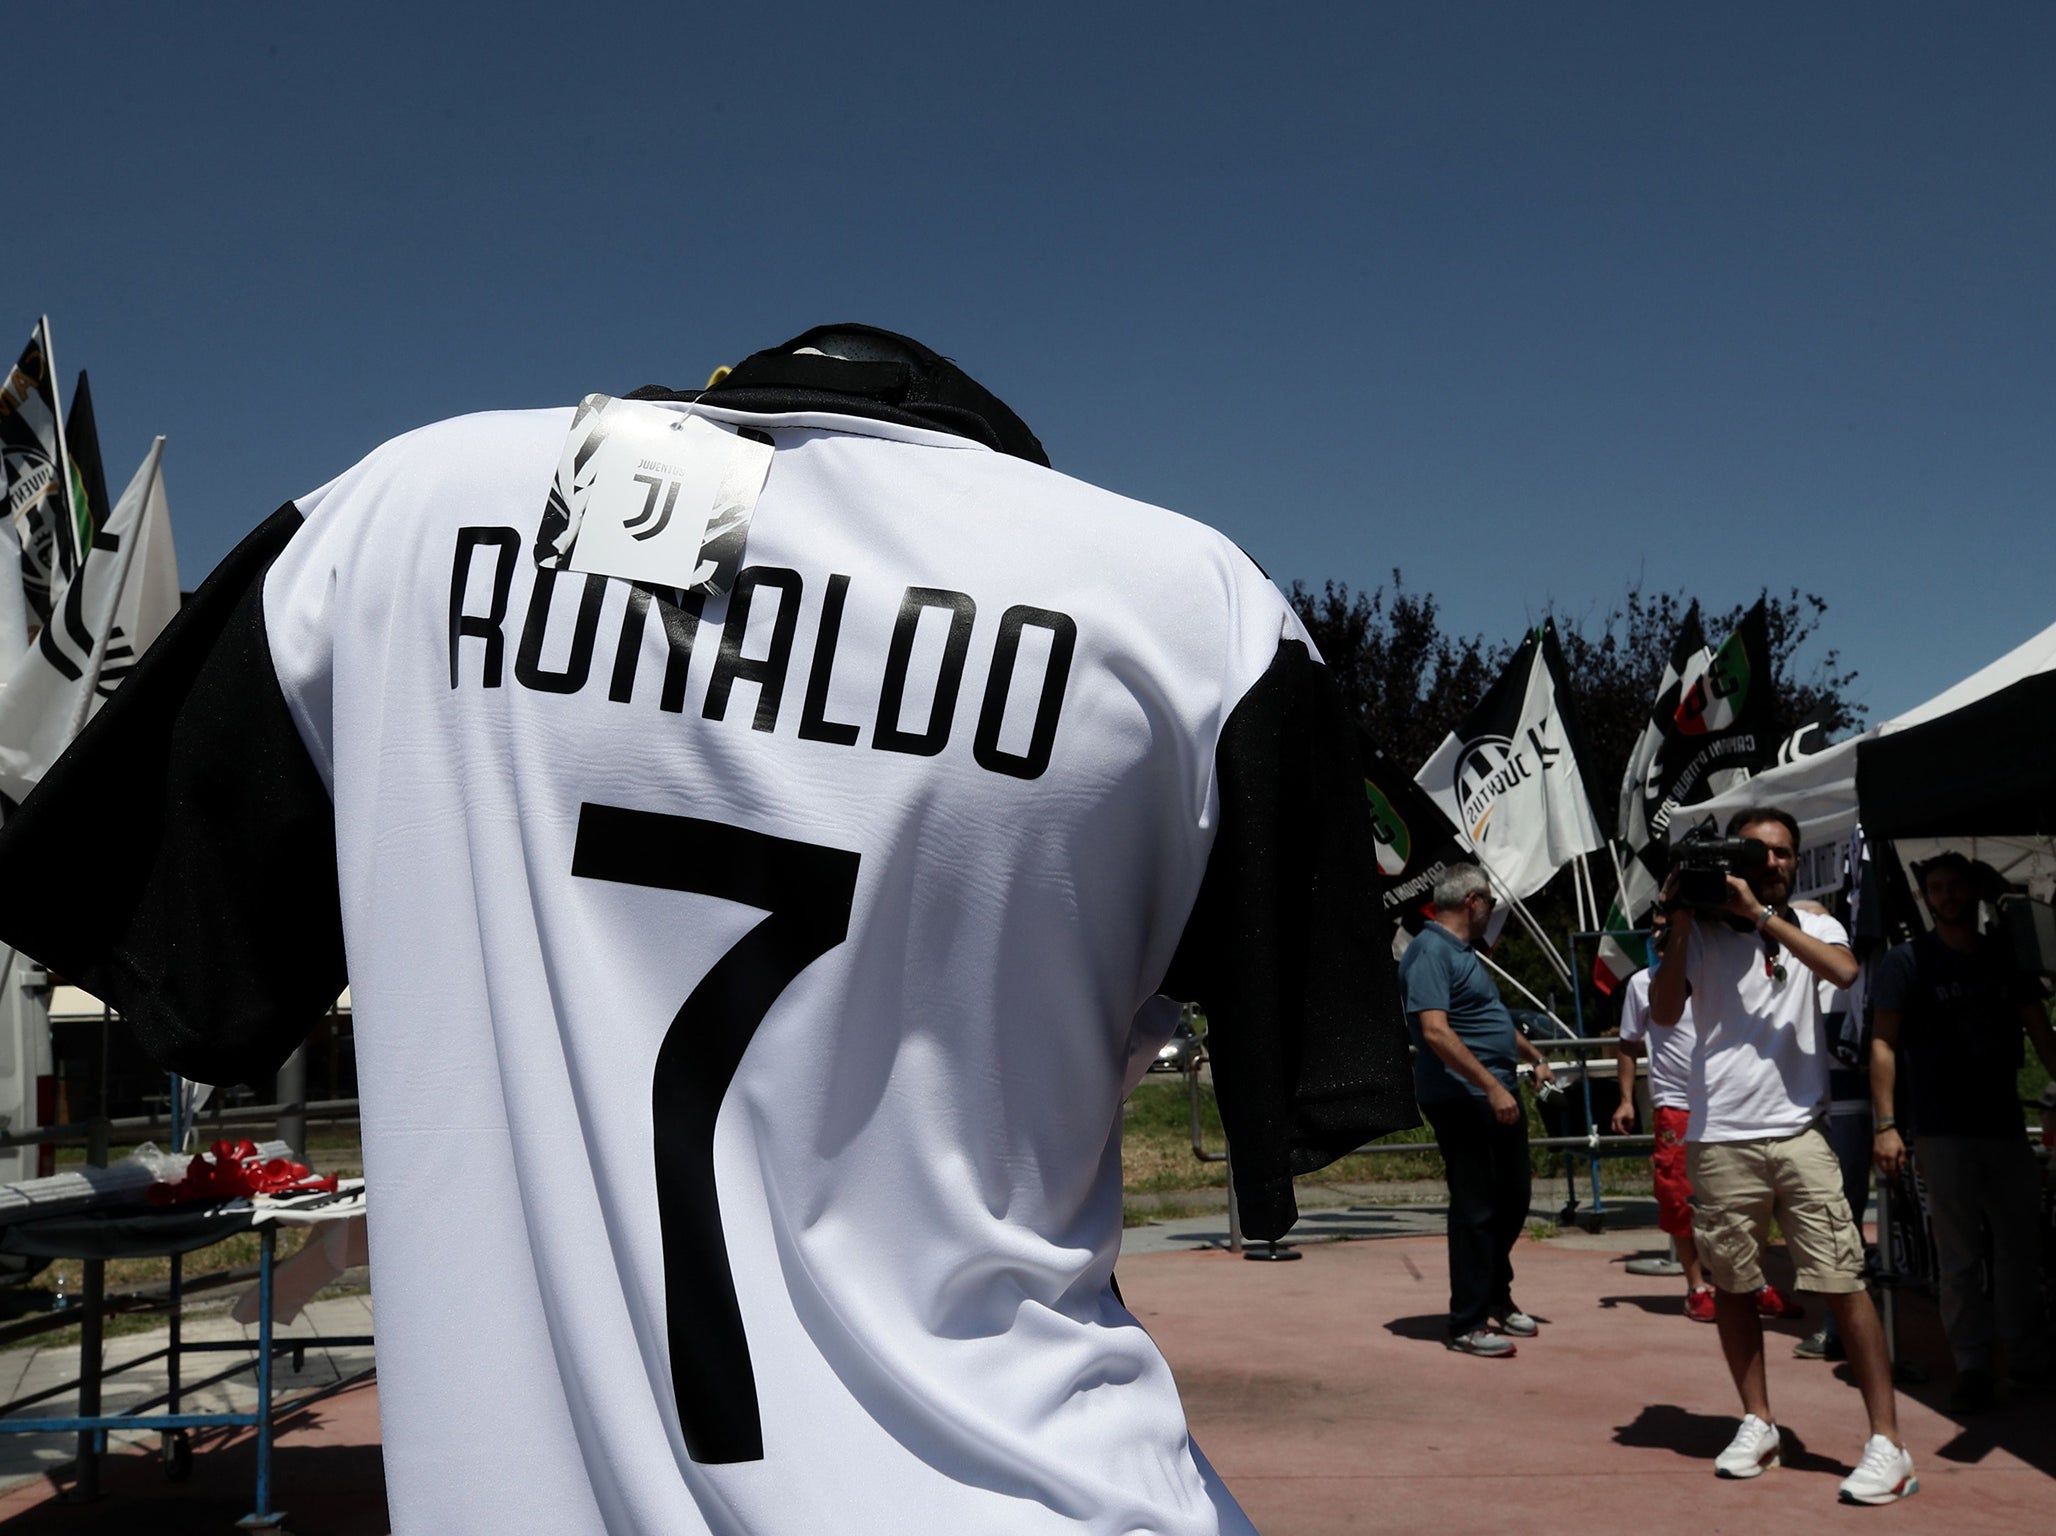 on sale 73516 75df6 Cristiano Ronaldo Juventus transfer: What squad number will ...